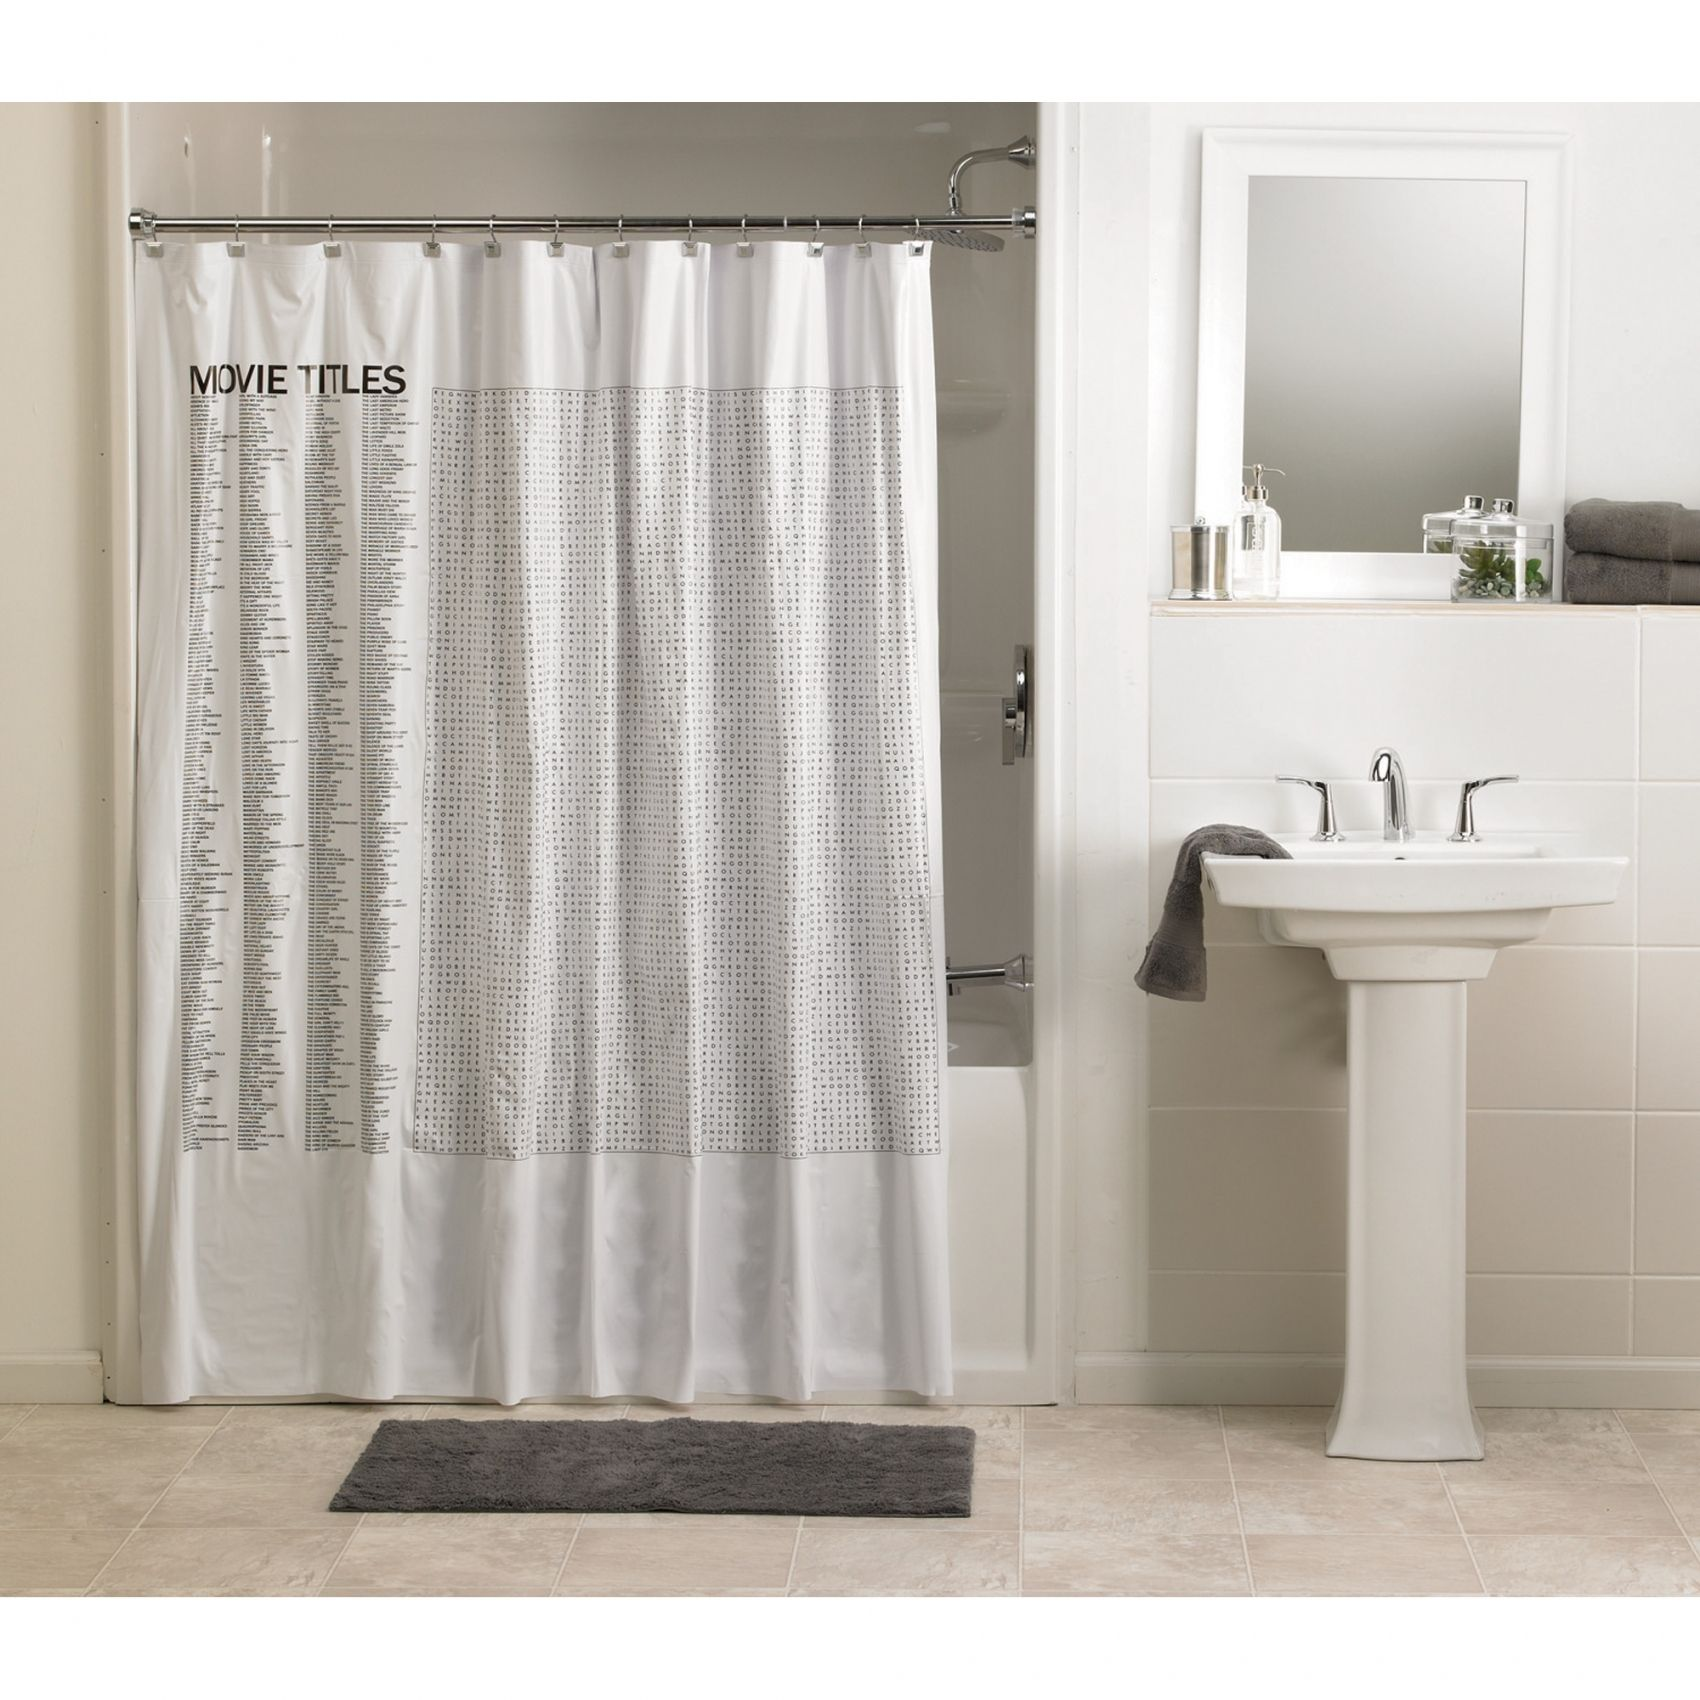 A Simple Guide To Long Length Shower Curtains Wc12kl9 Shower